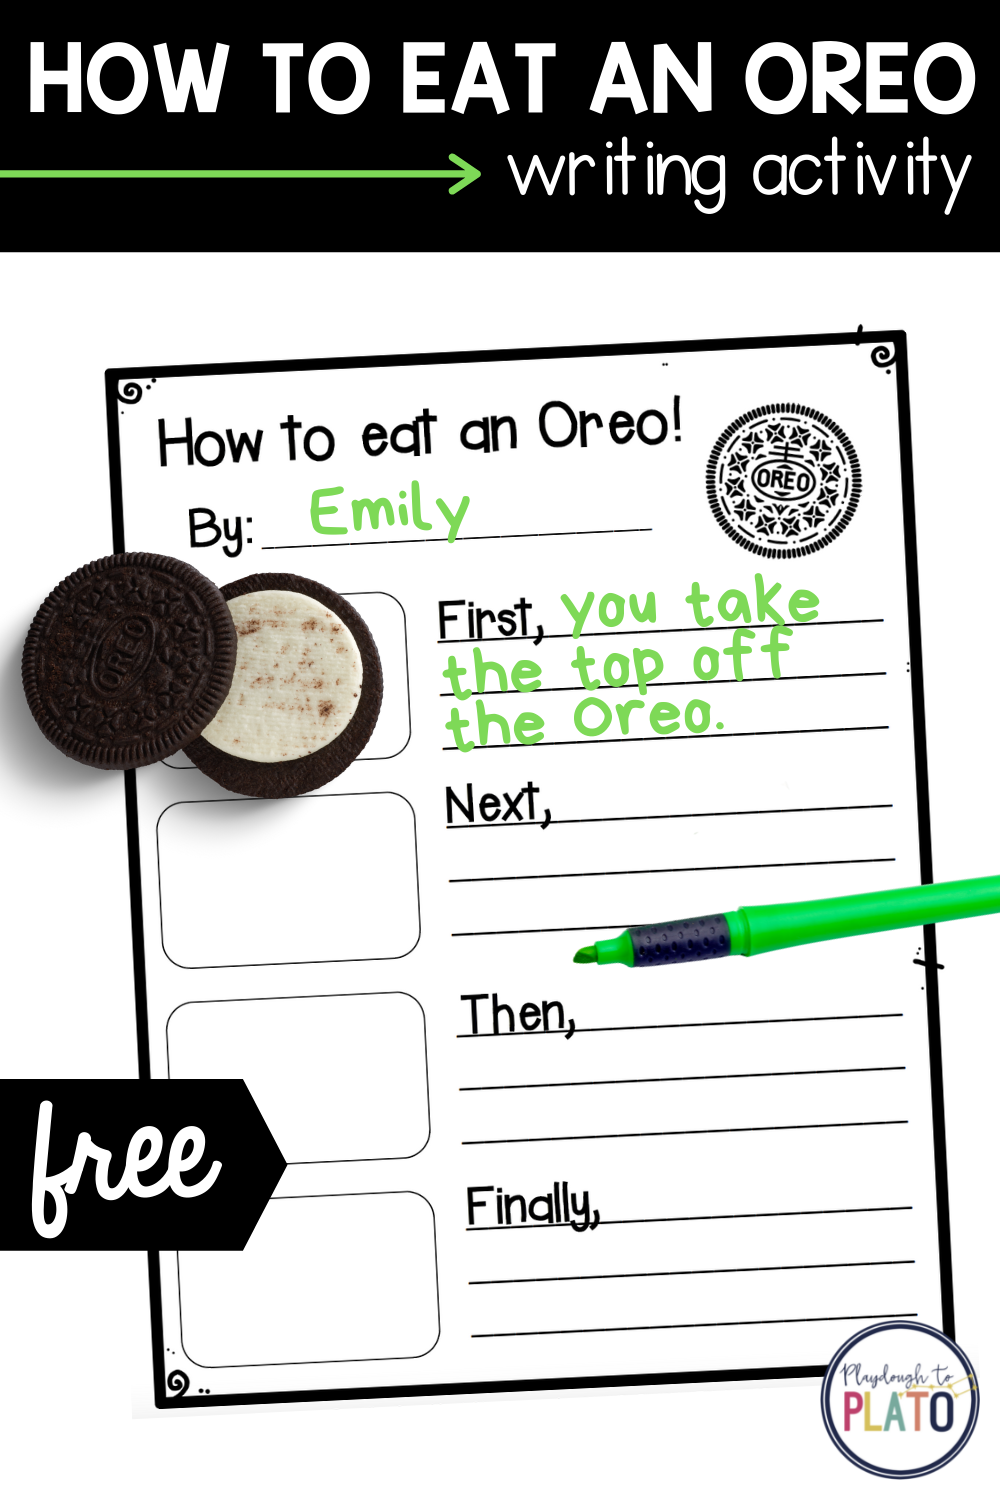 How to Eat an Oreo Writing Activity